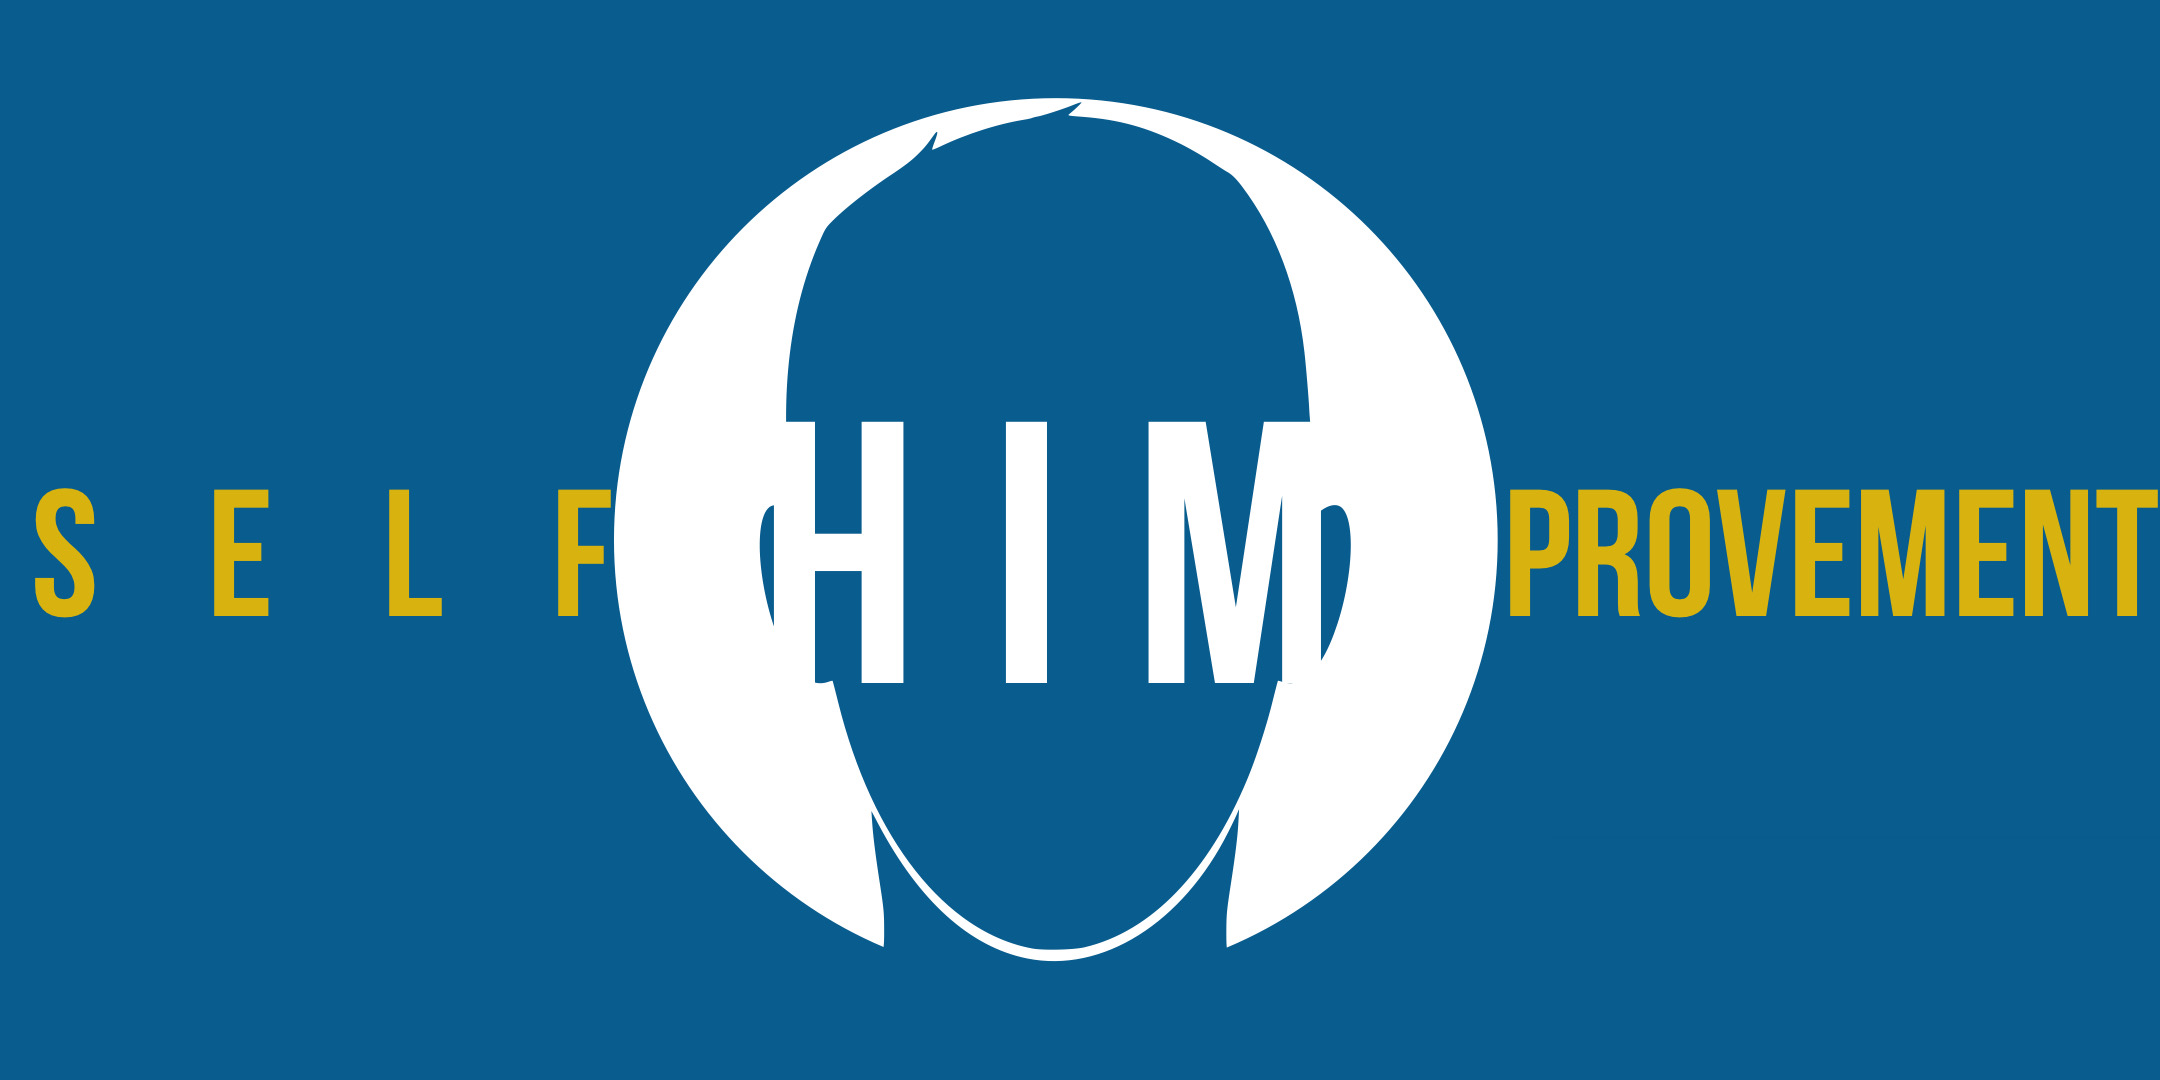 Self-Himprovement Rectangular logo